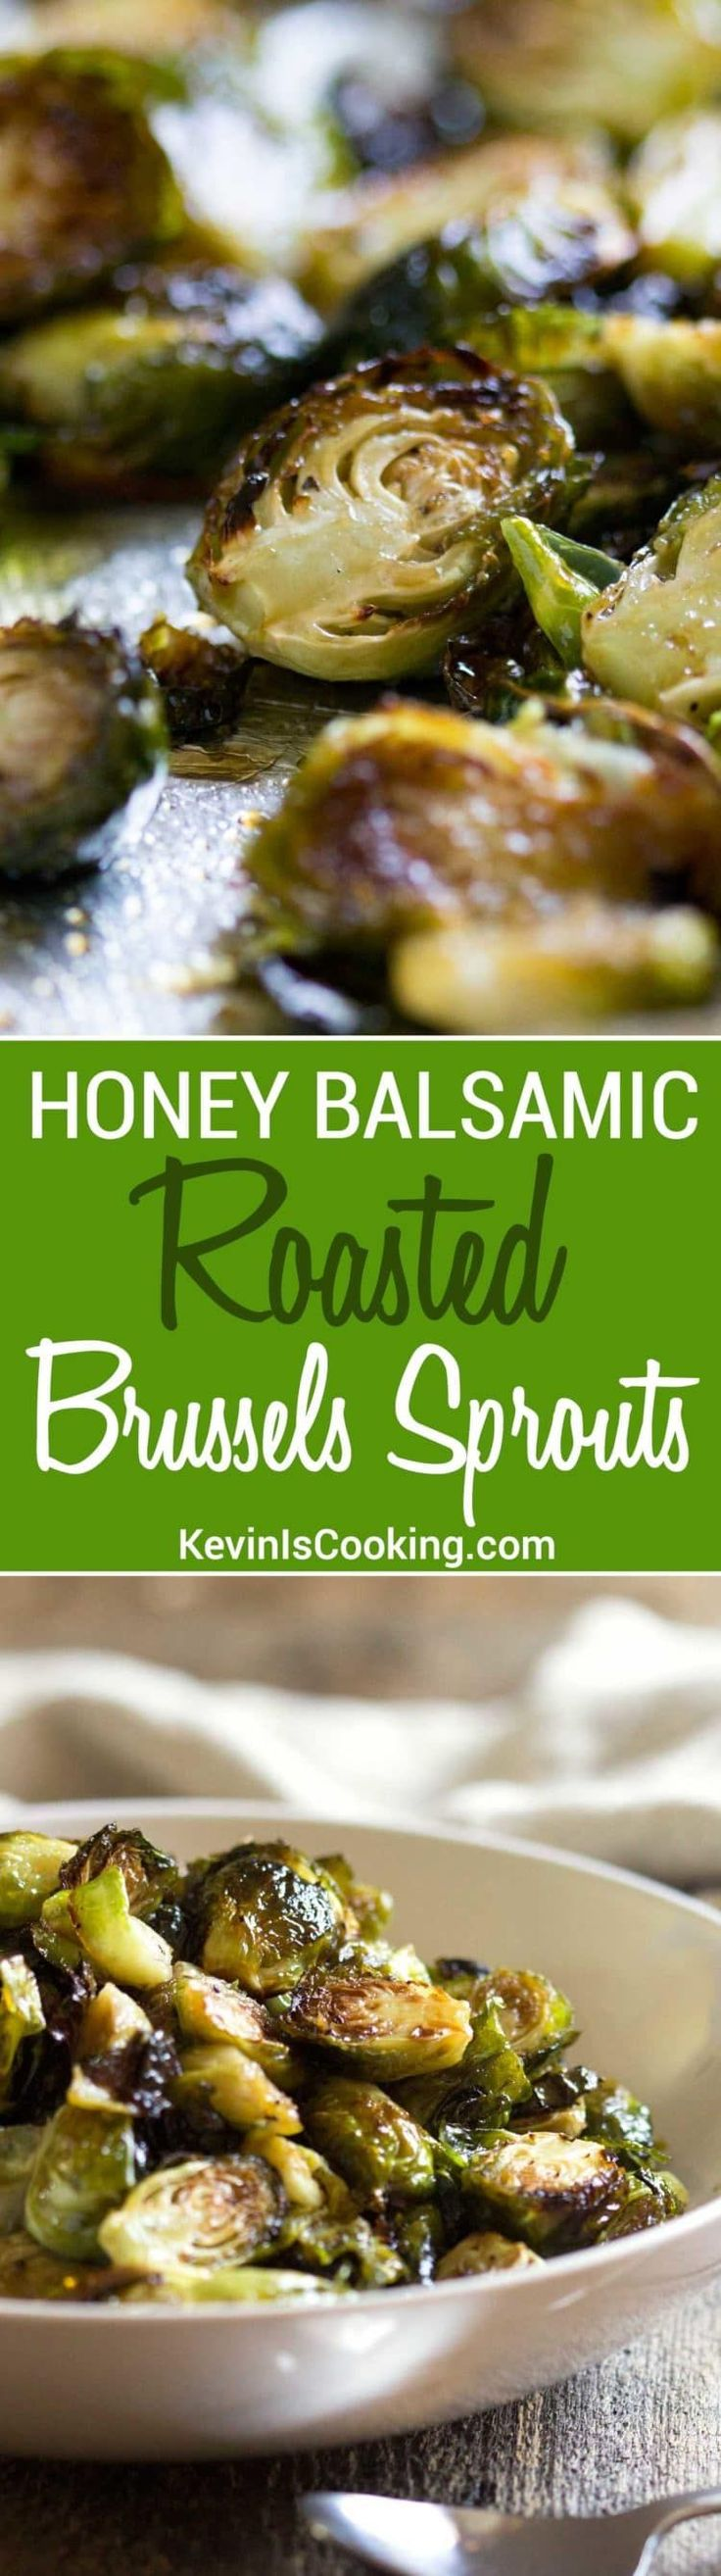 Honey Balsamic Roasted Brussels Sprouts - keviniscooking.com